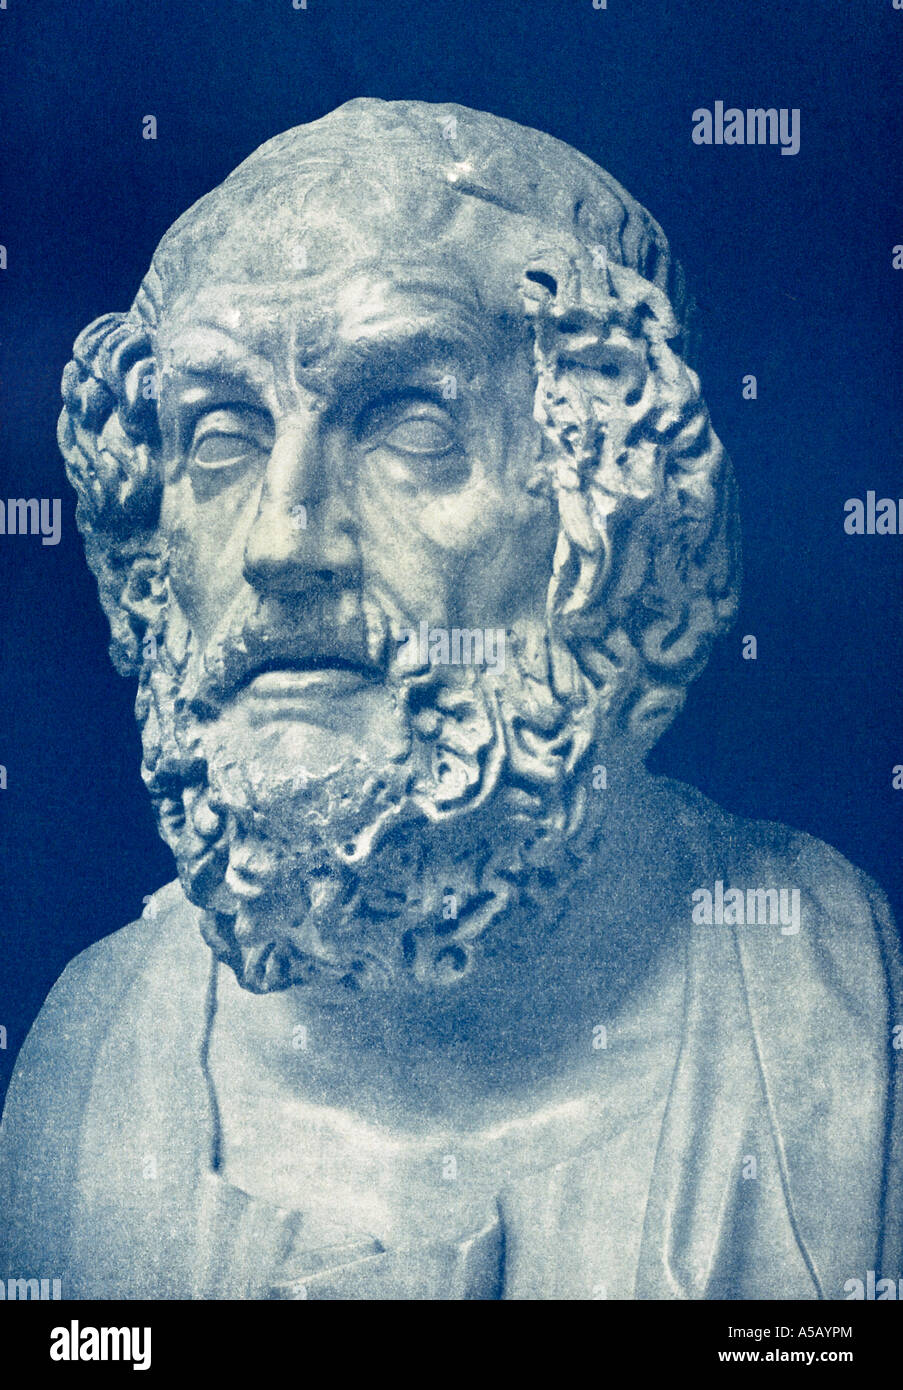 homer the greek poet Homer (700-800 bc), commonly credited as the greek poet and author of western literature's first and most influential works iliad (c 750-725 bc) and its sequel.